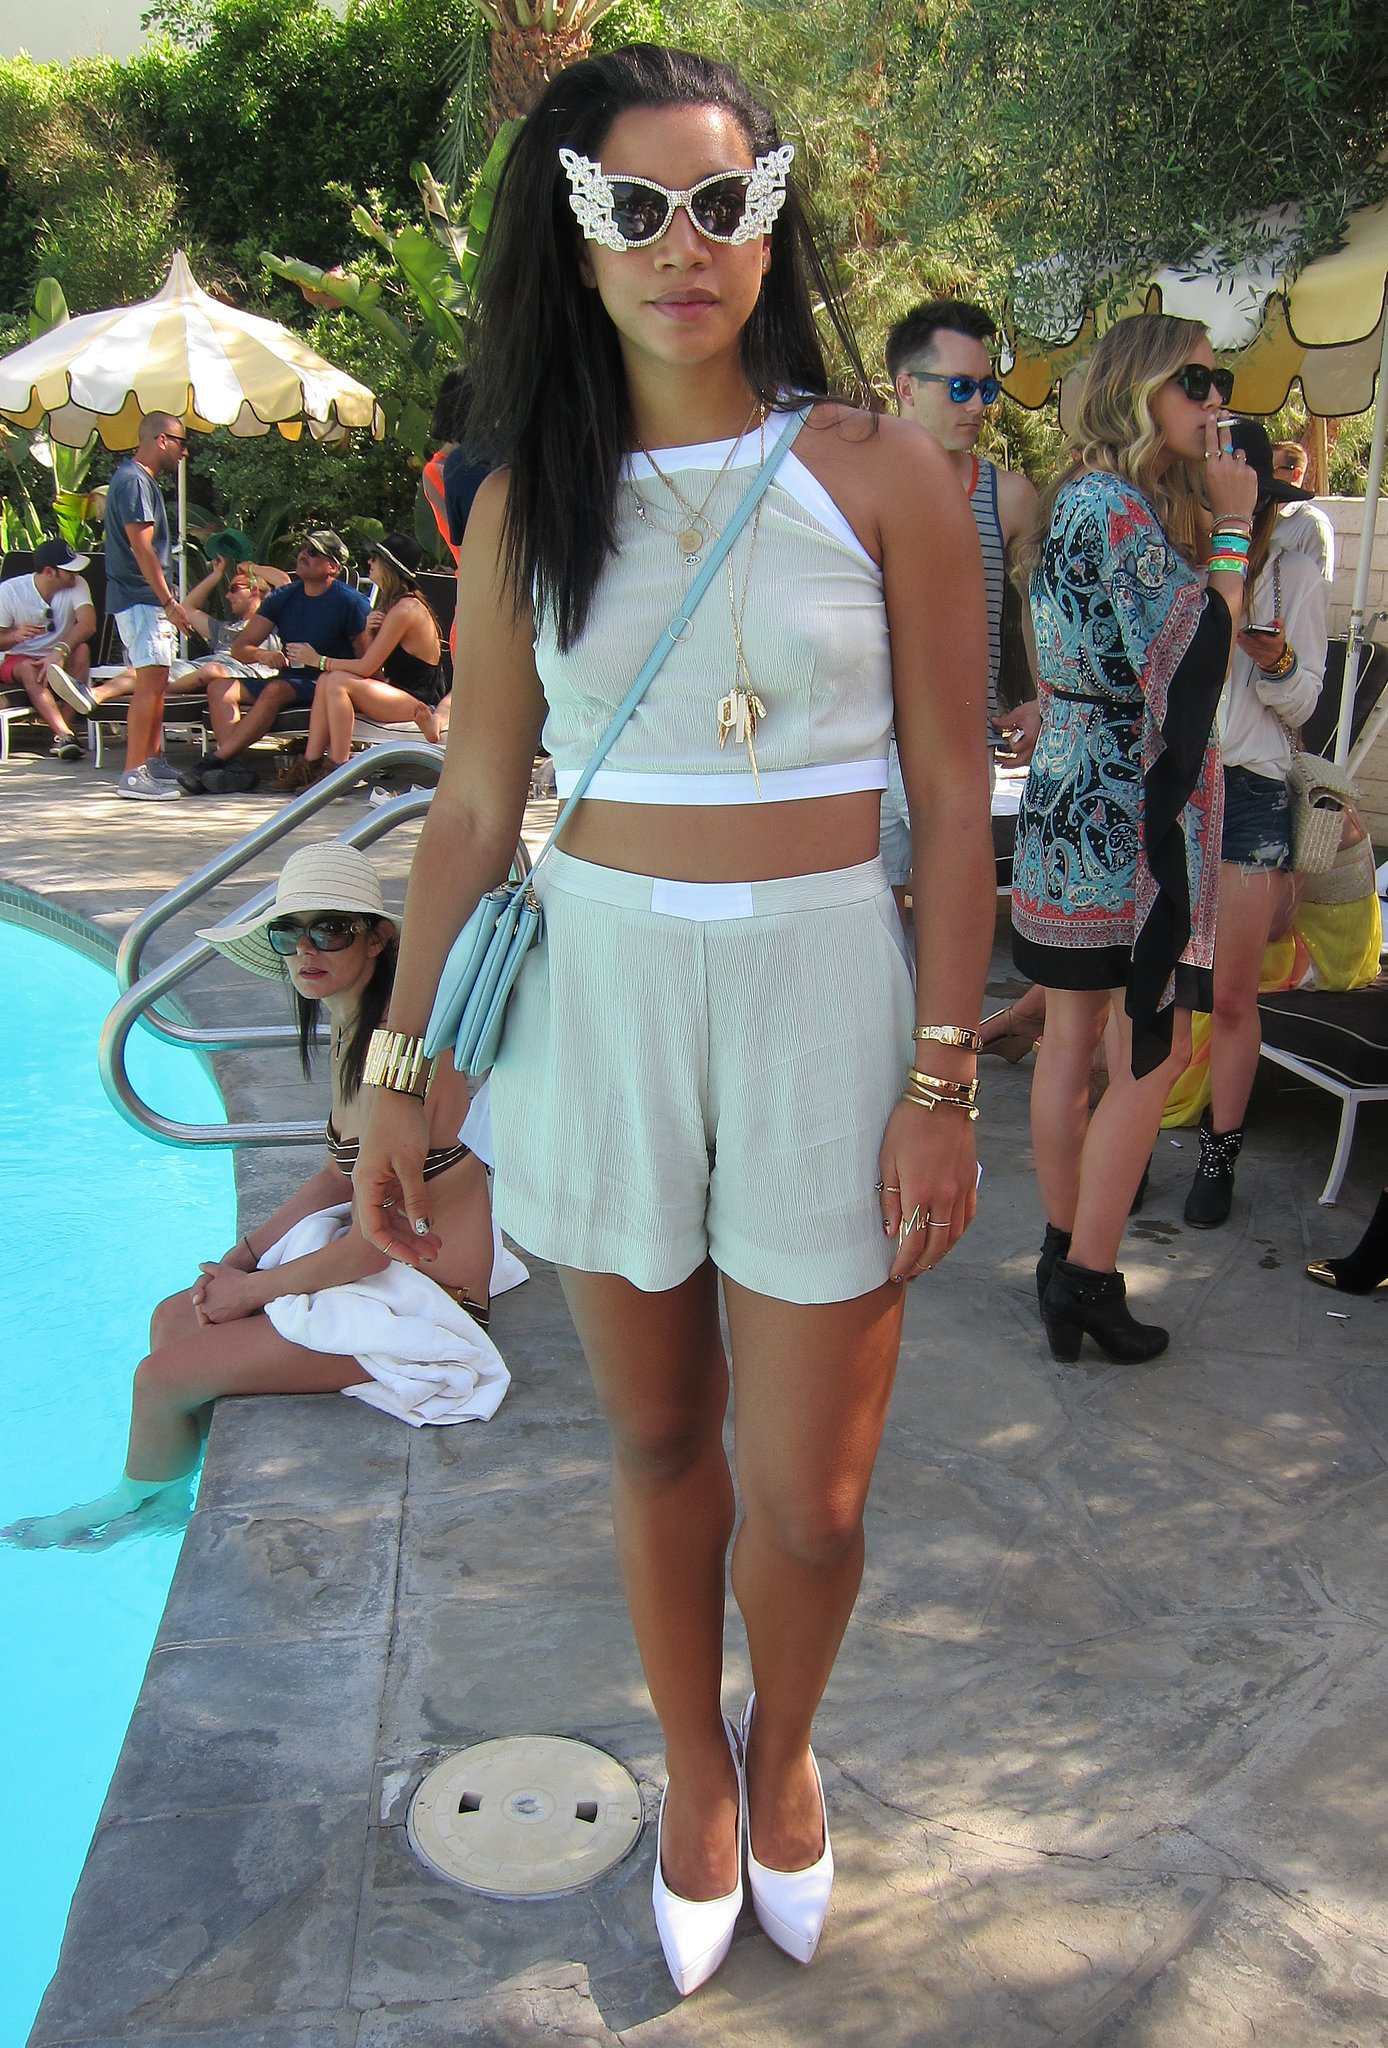 Bold accessories were tempered with a light mint green crop top and high-waisted shorts for a striking party ensemble. Source: Chi Diem Chau